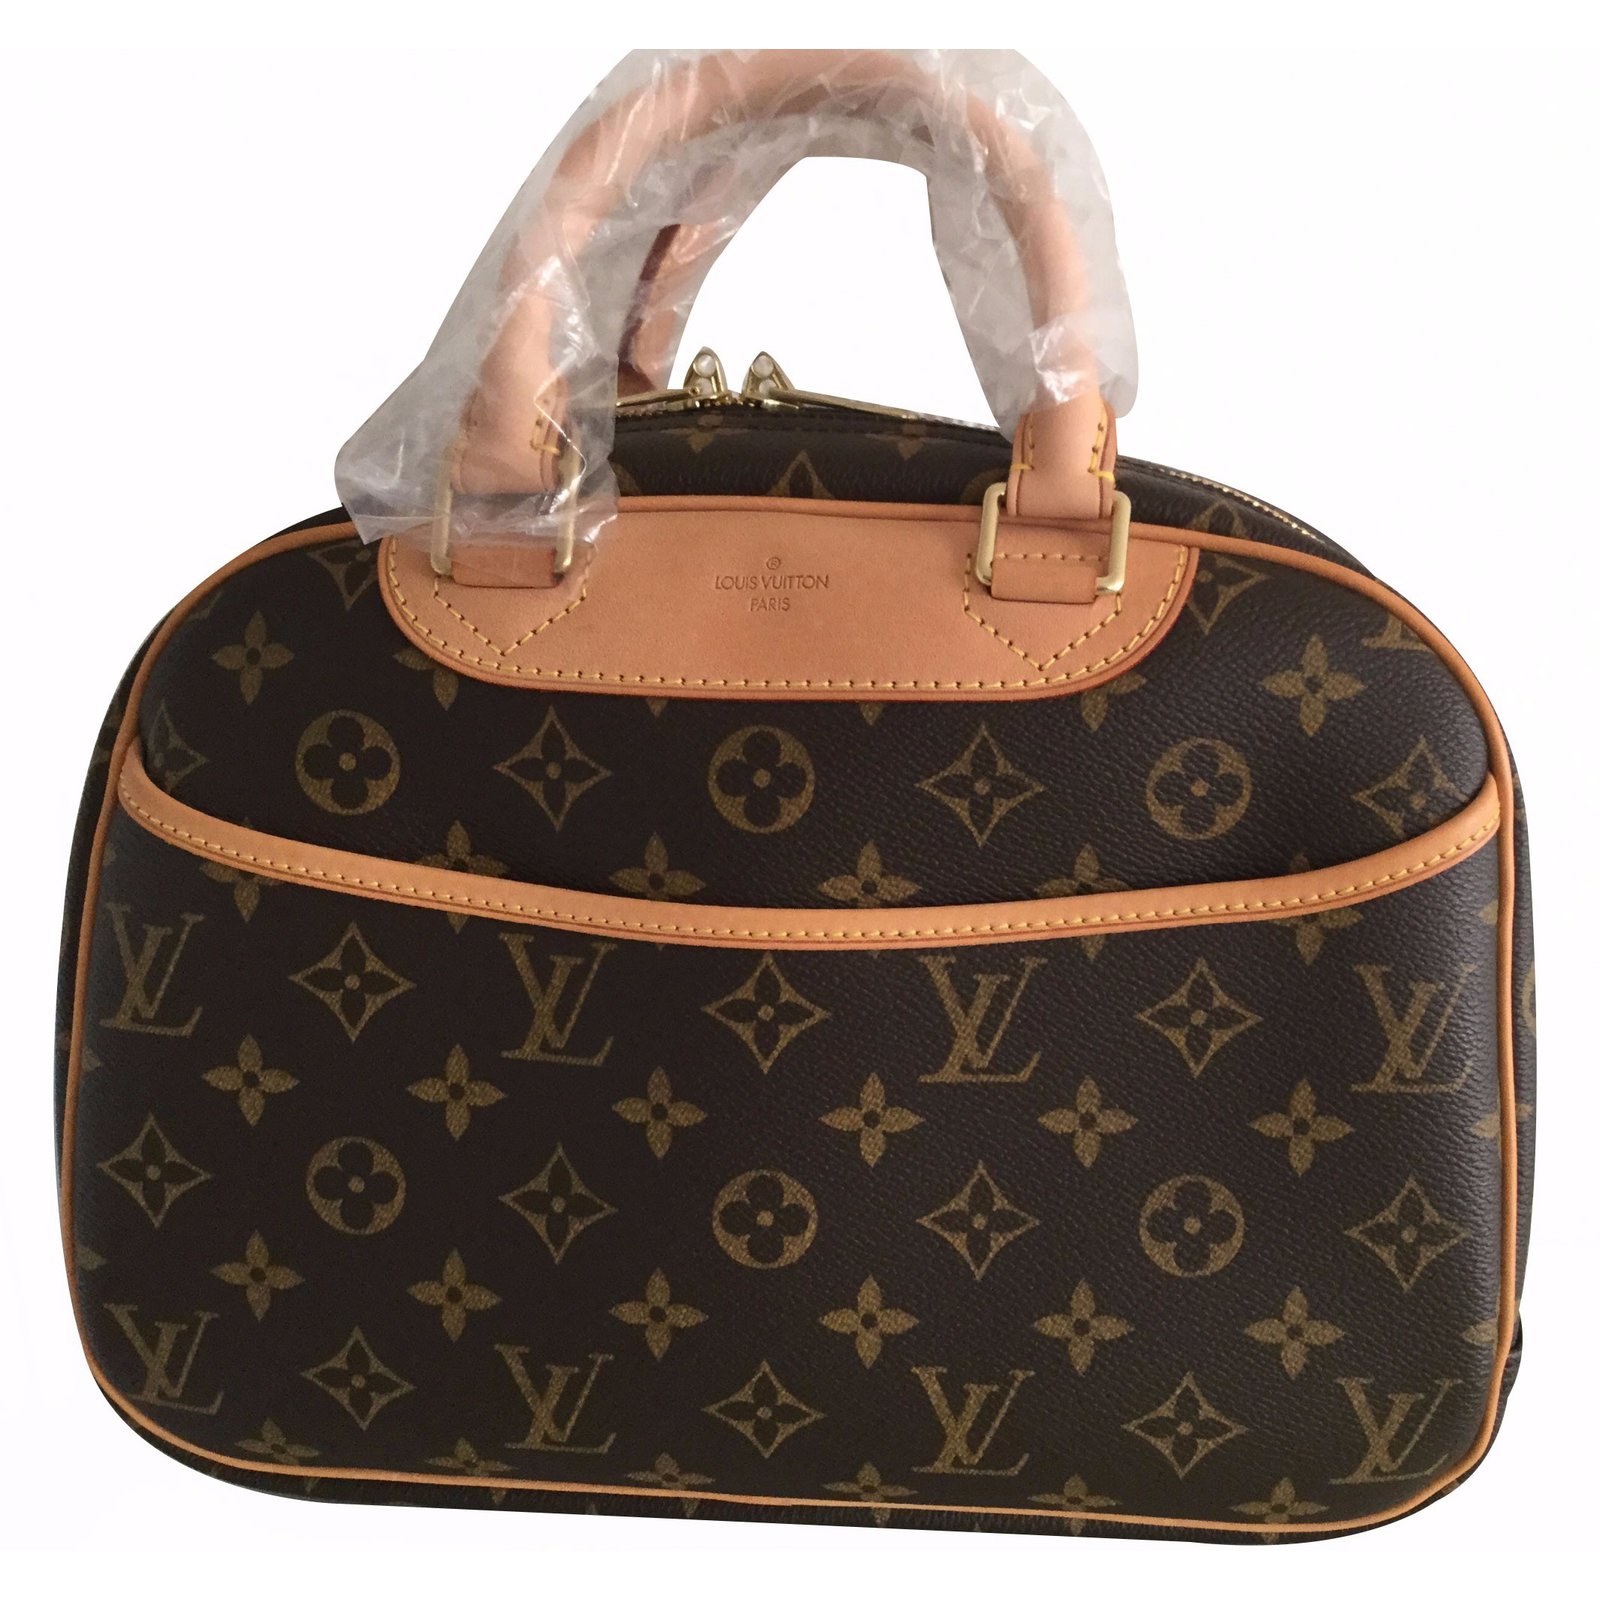 ... anthracite Sacs à main Louis Vuitton sac Trouville Cuir Marron ref.17593  ... 25a79a6d431